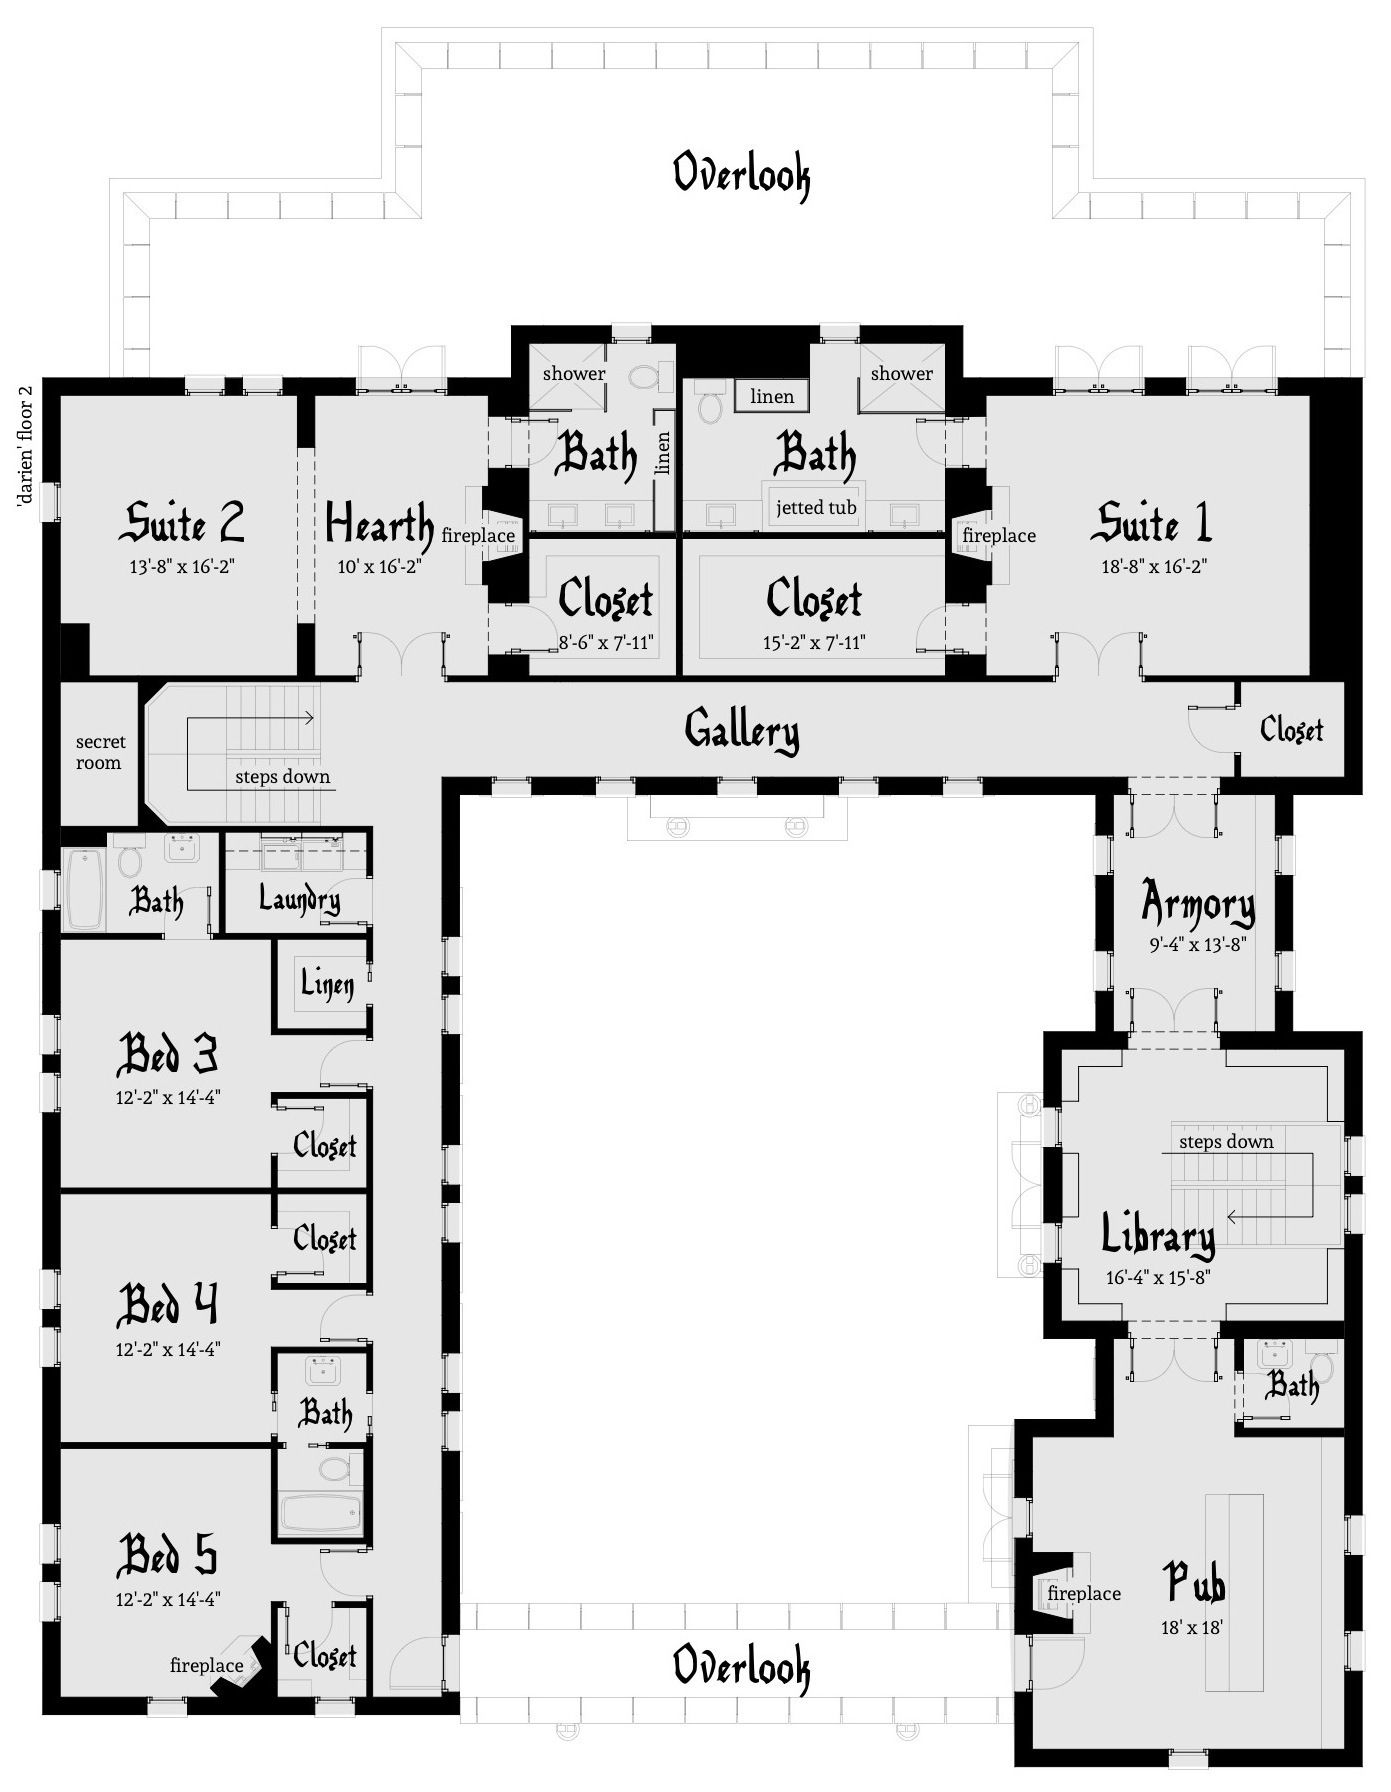 Dantyree Com Nbspthis Website Is For Sale Nbspdantyree Resources And Information Castle House Plans Castle Plans Castle Floor Plan